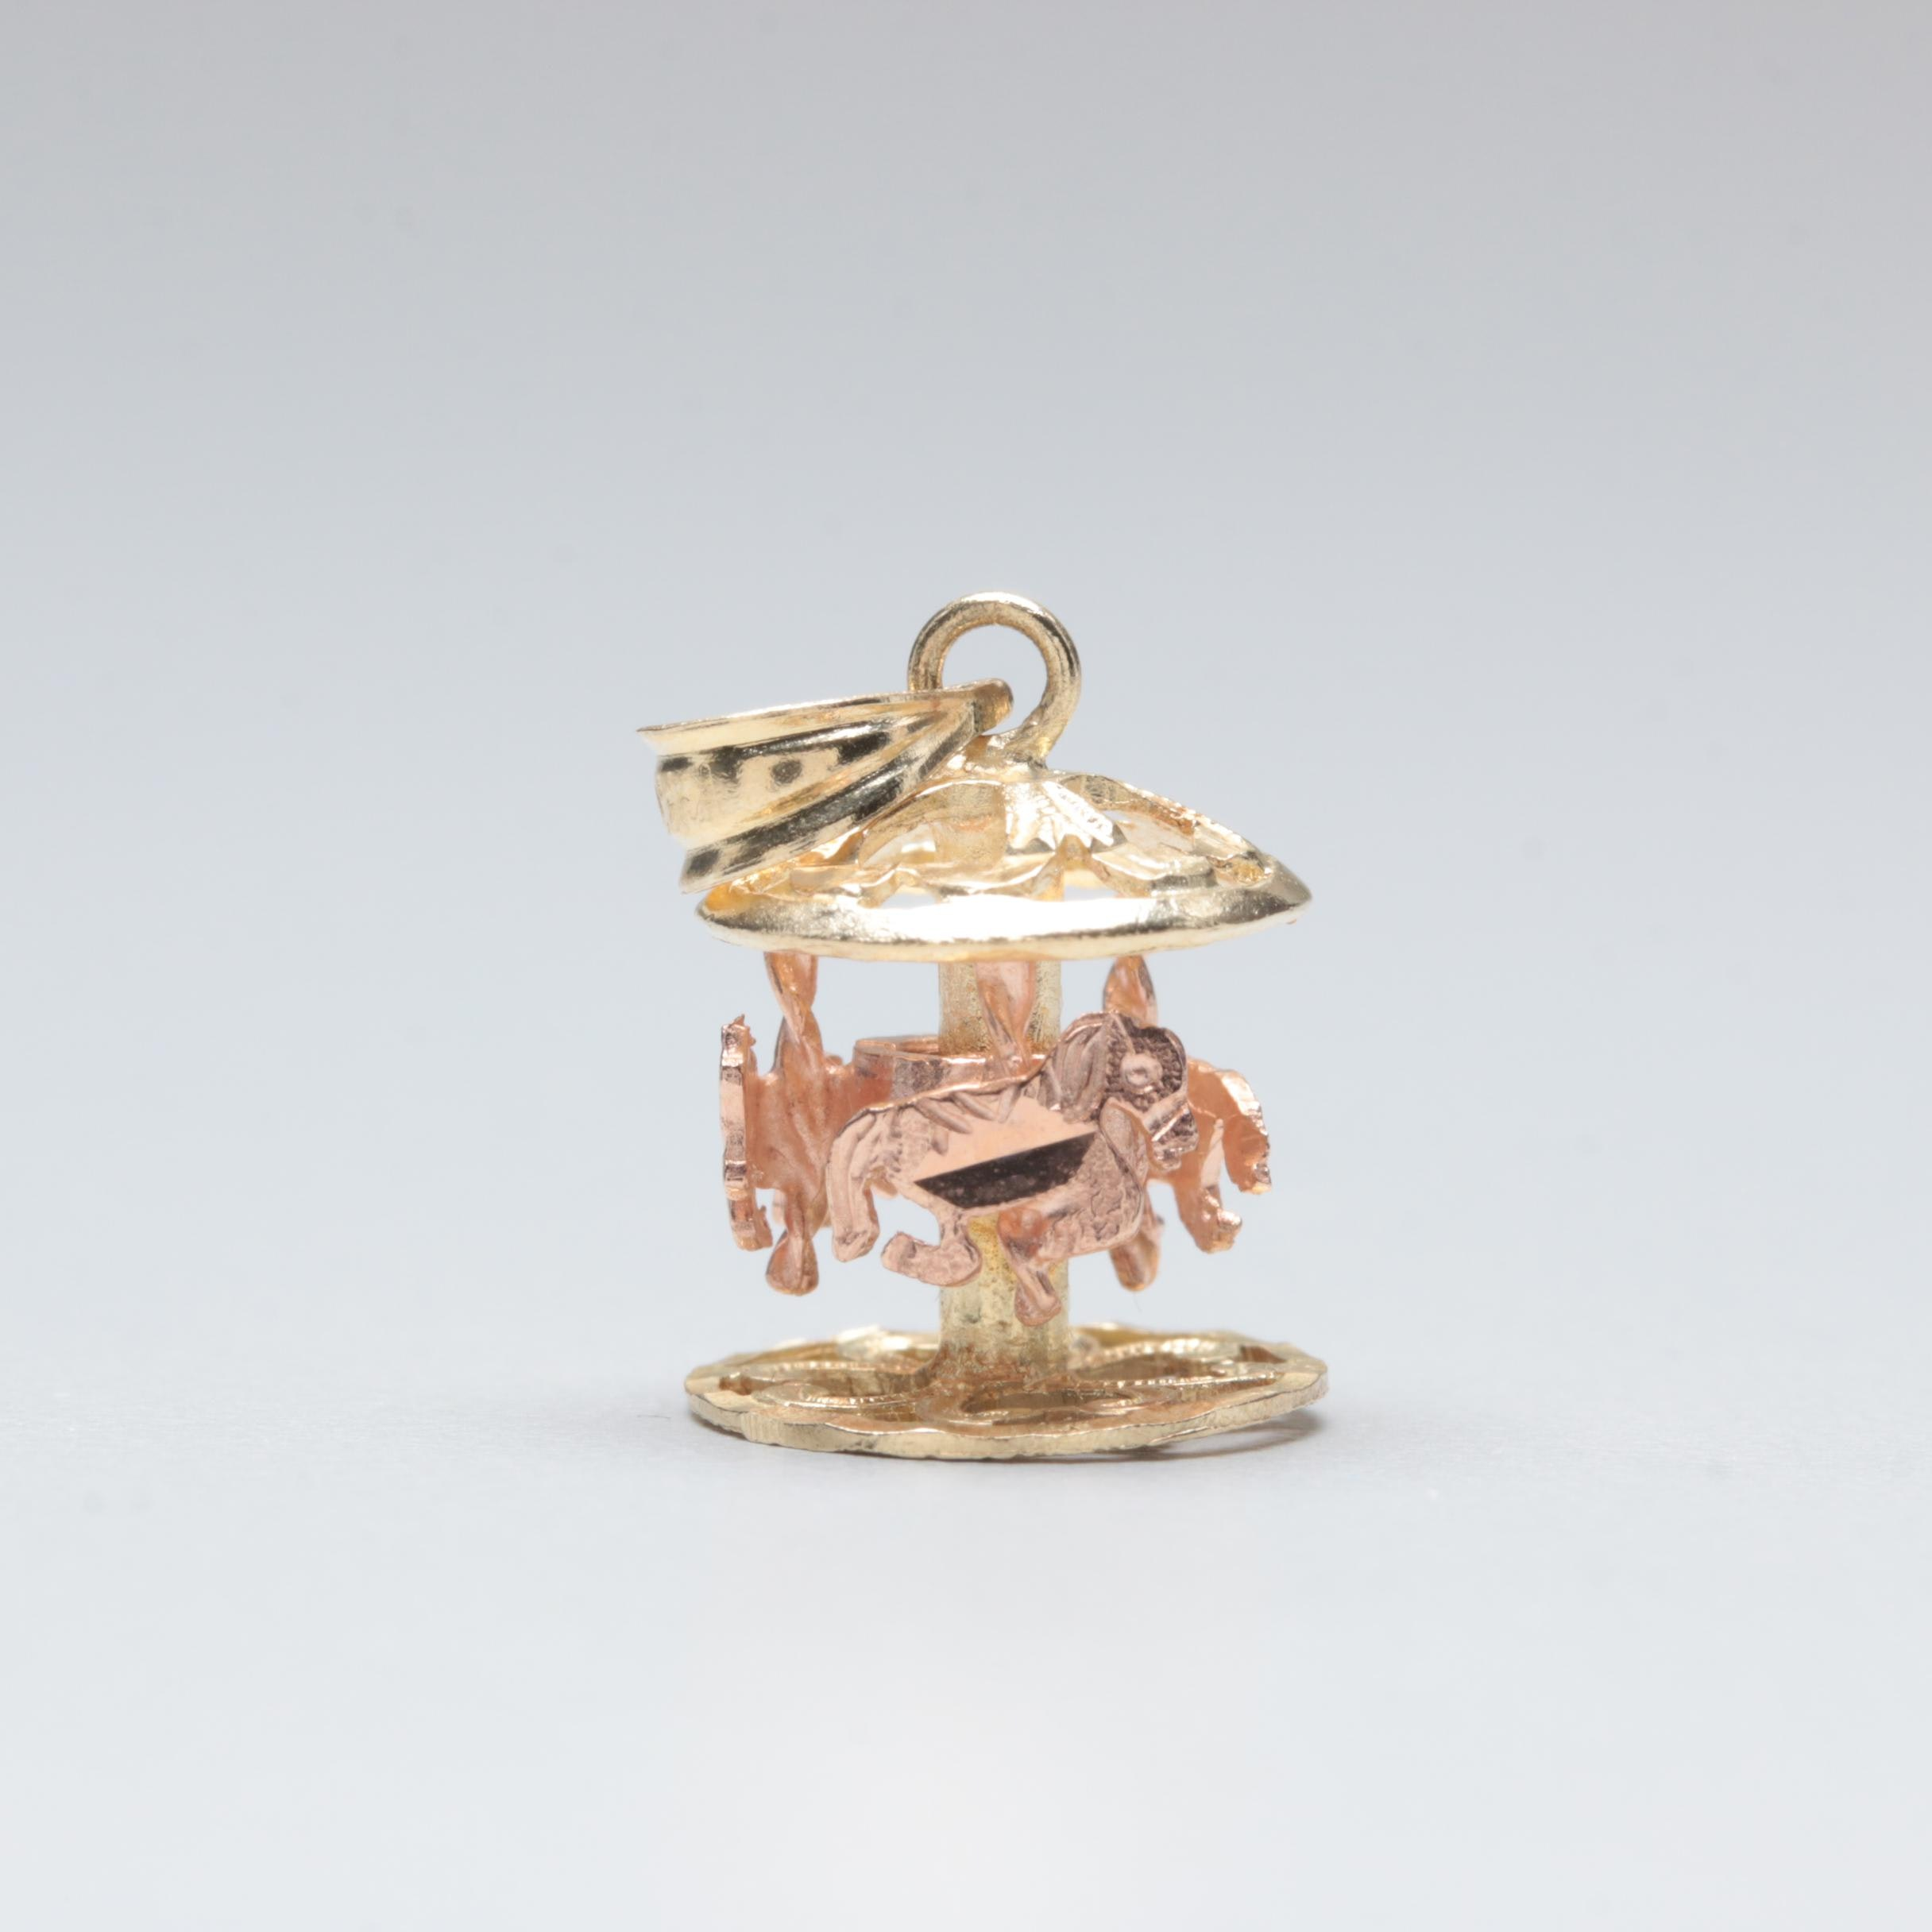 14K Yellow and Rose Gold Carousel Charm Pendant